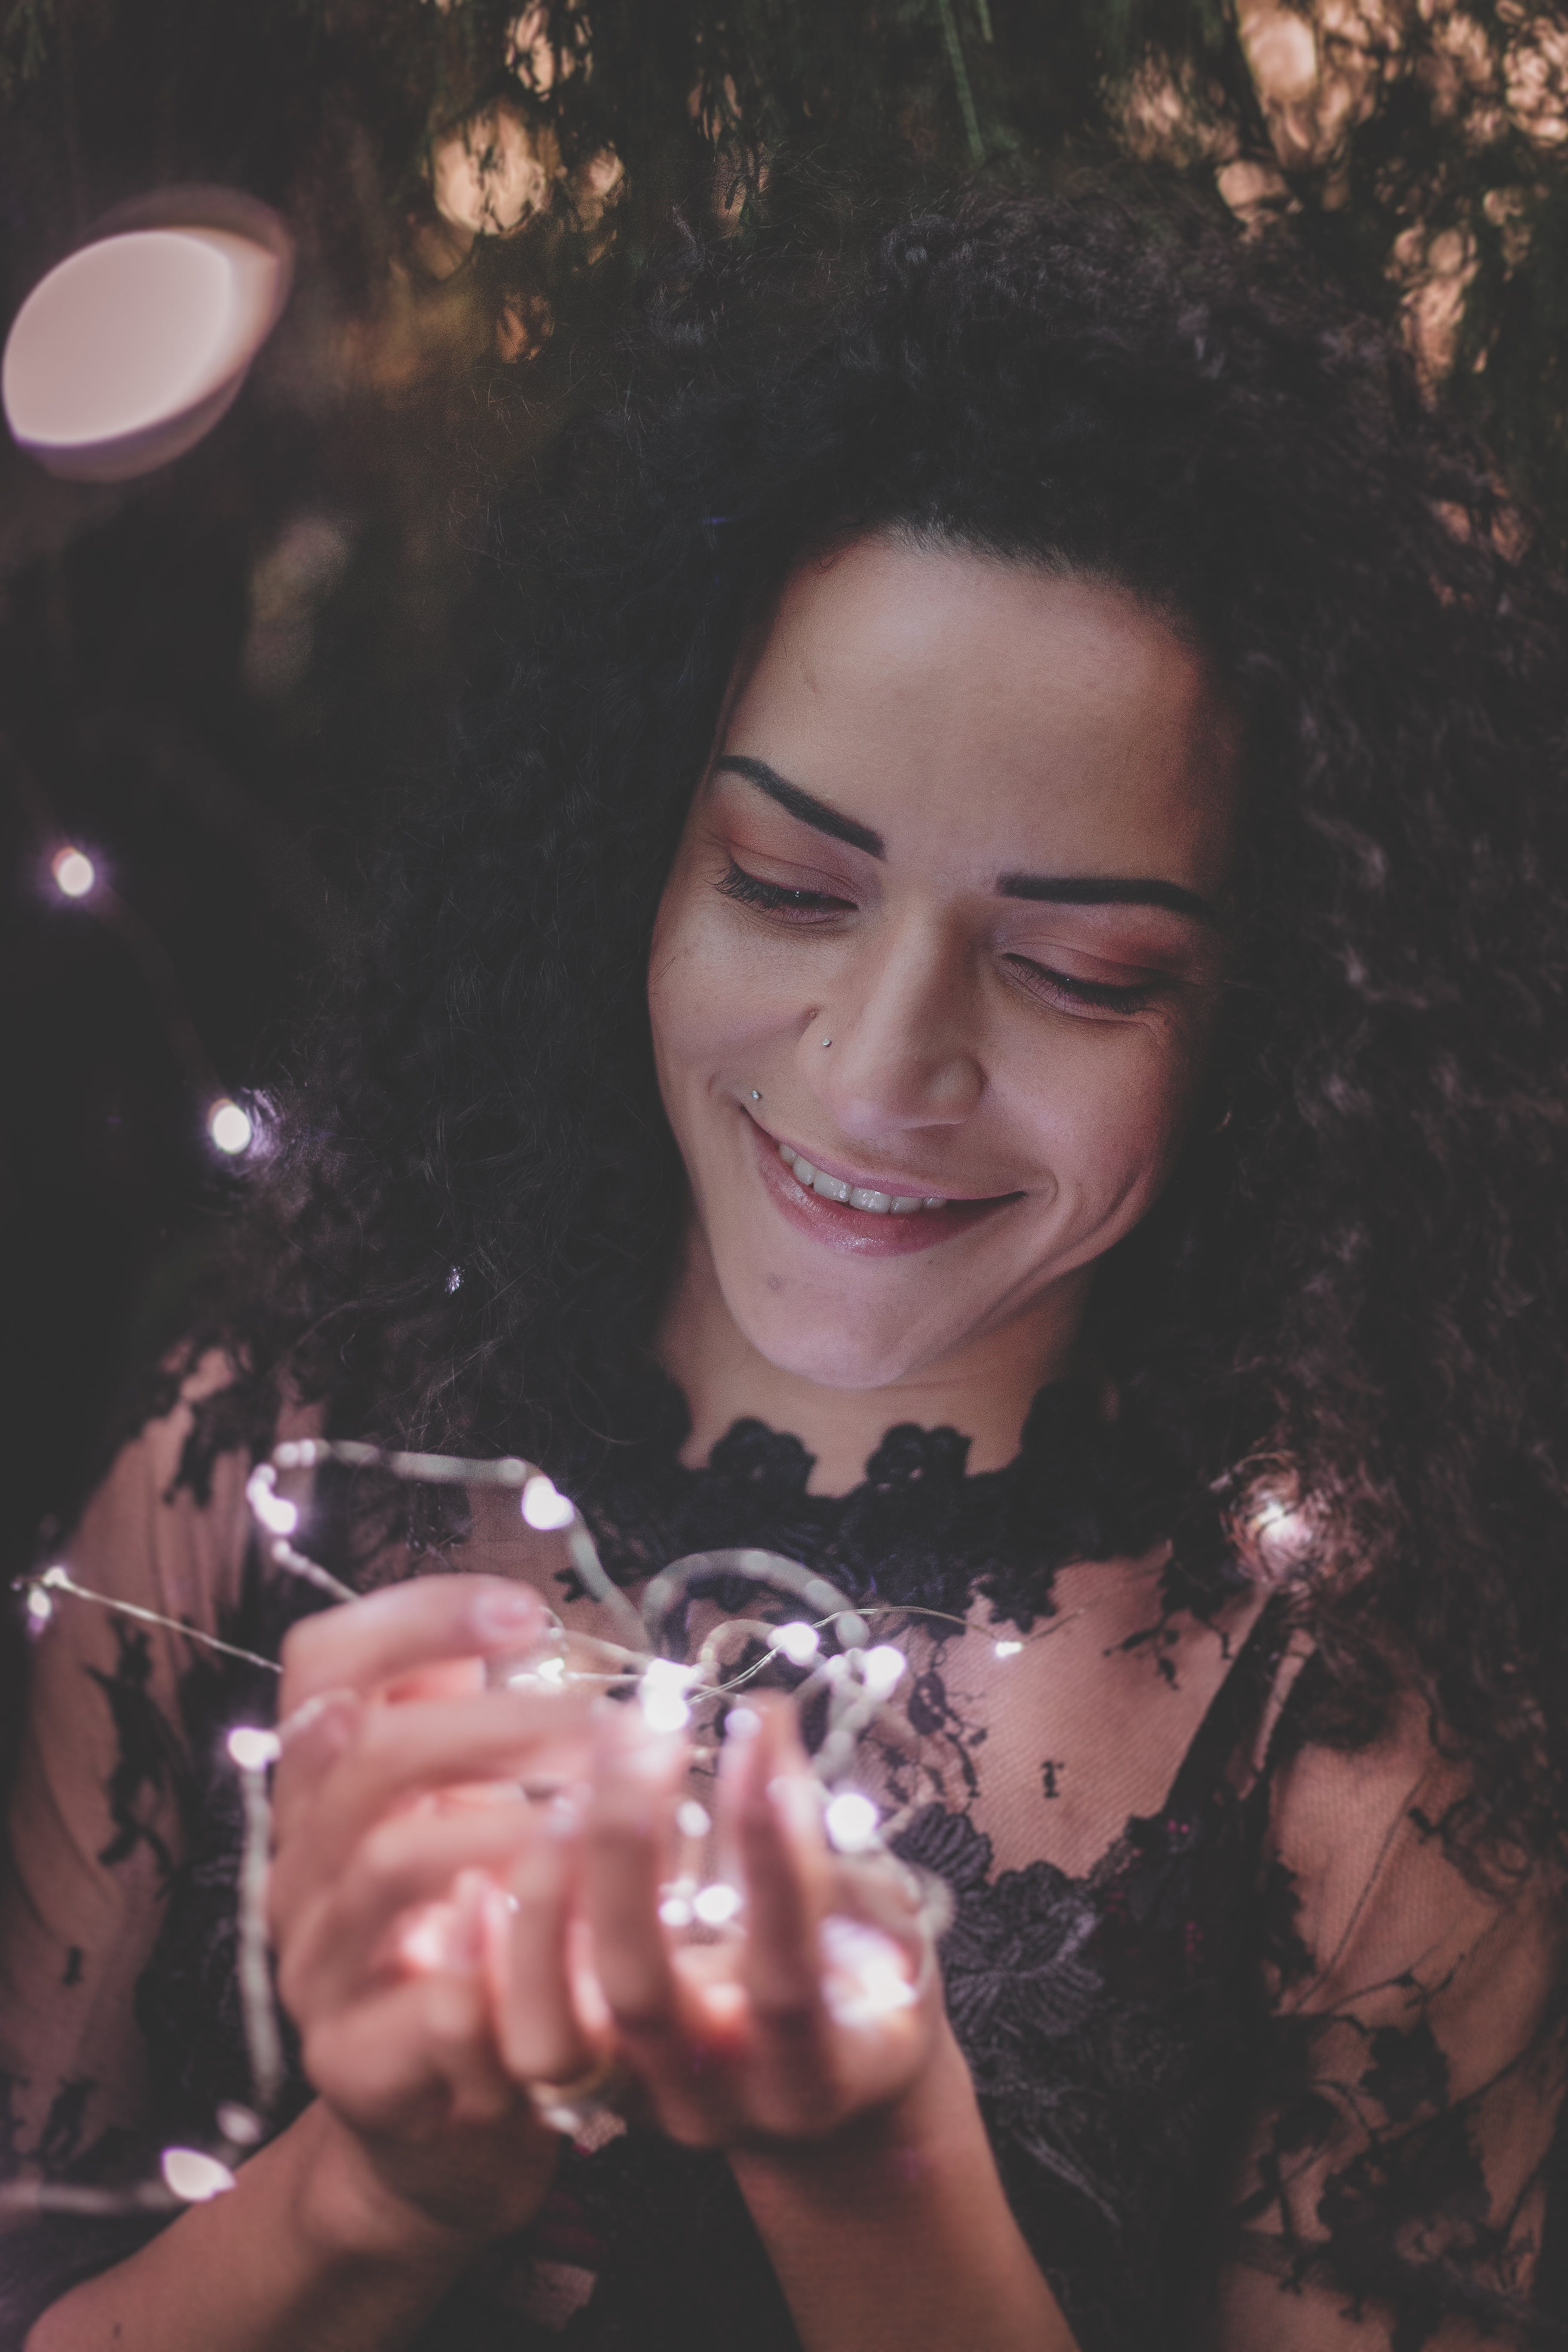 Woman Holding String Lights While Smiling